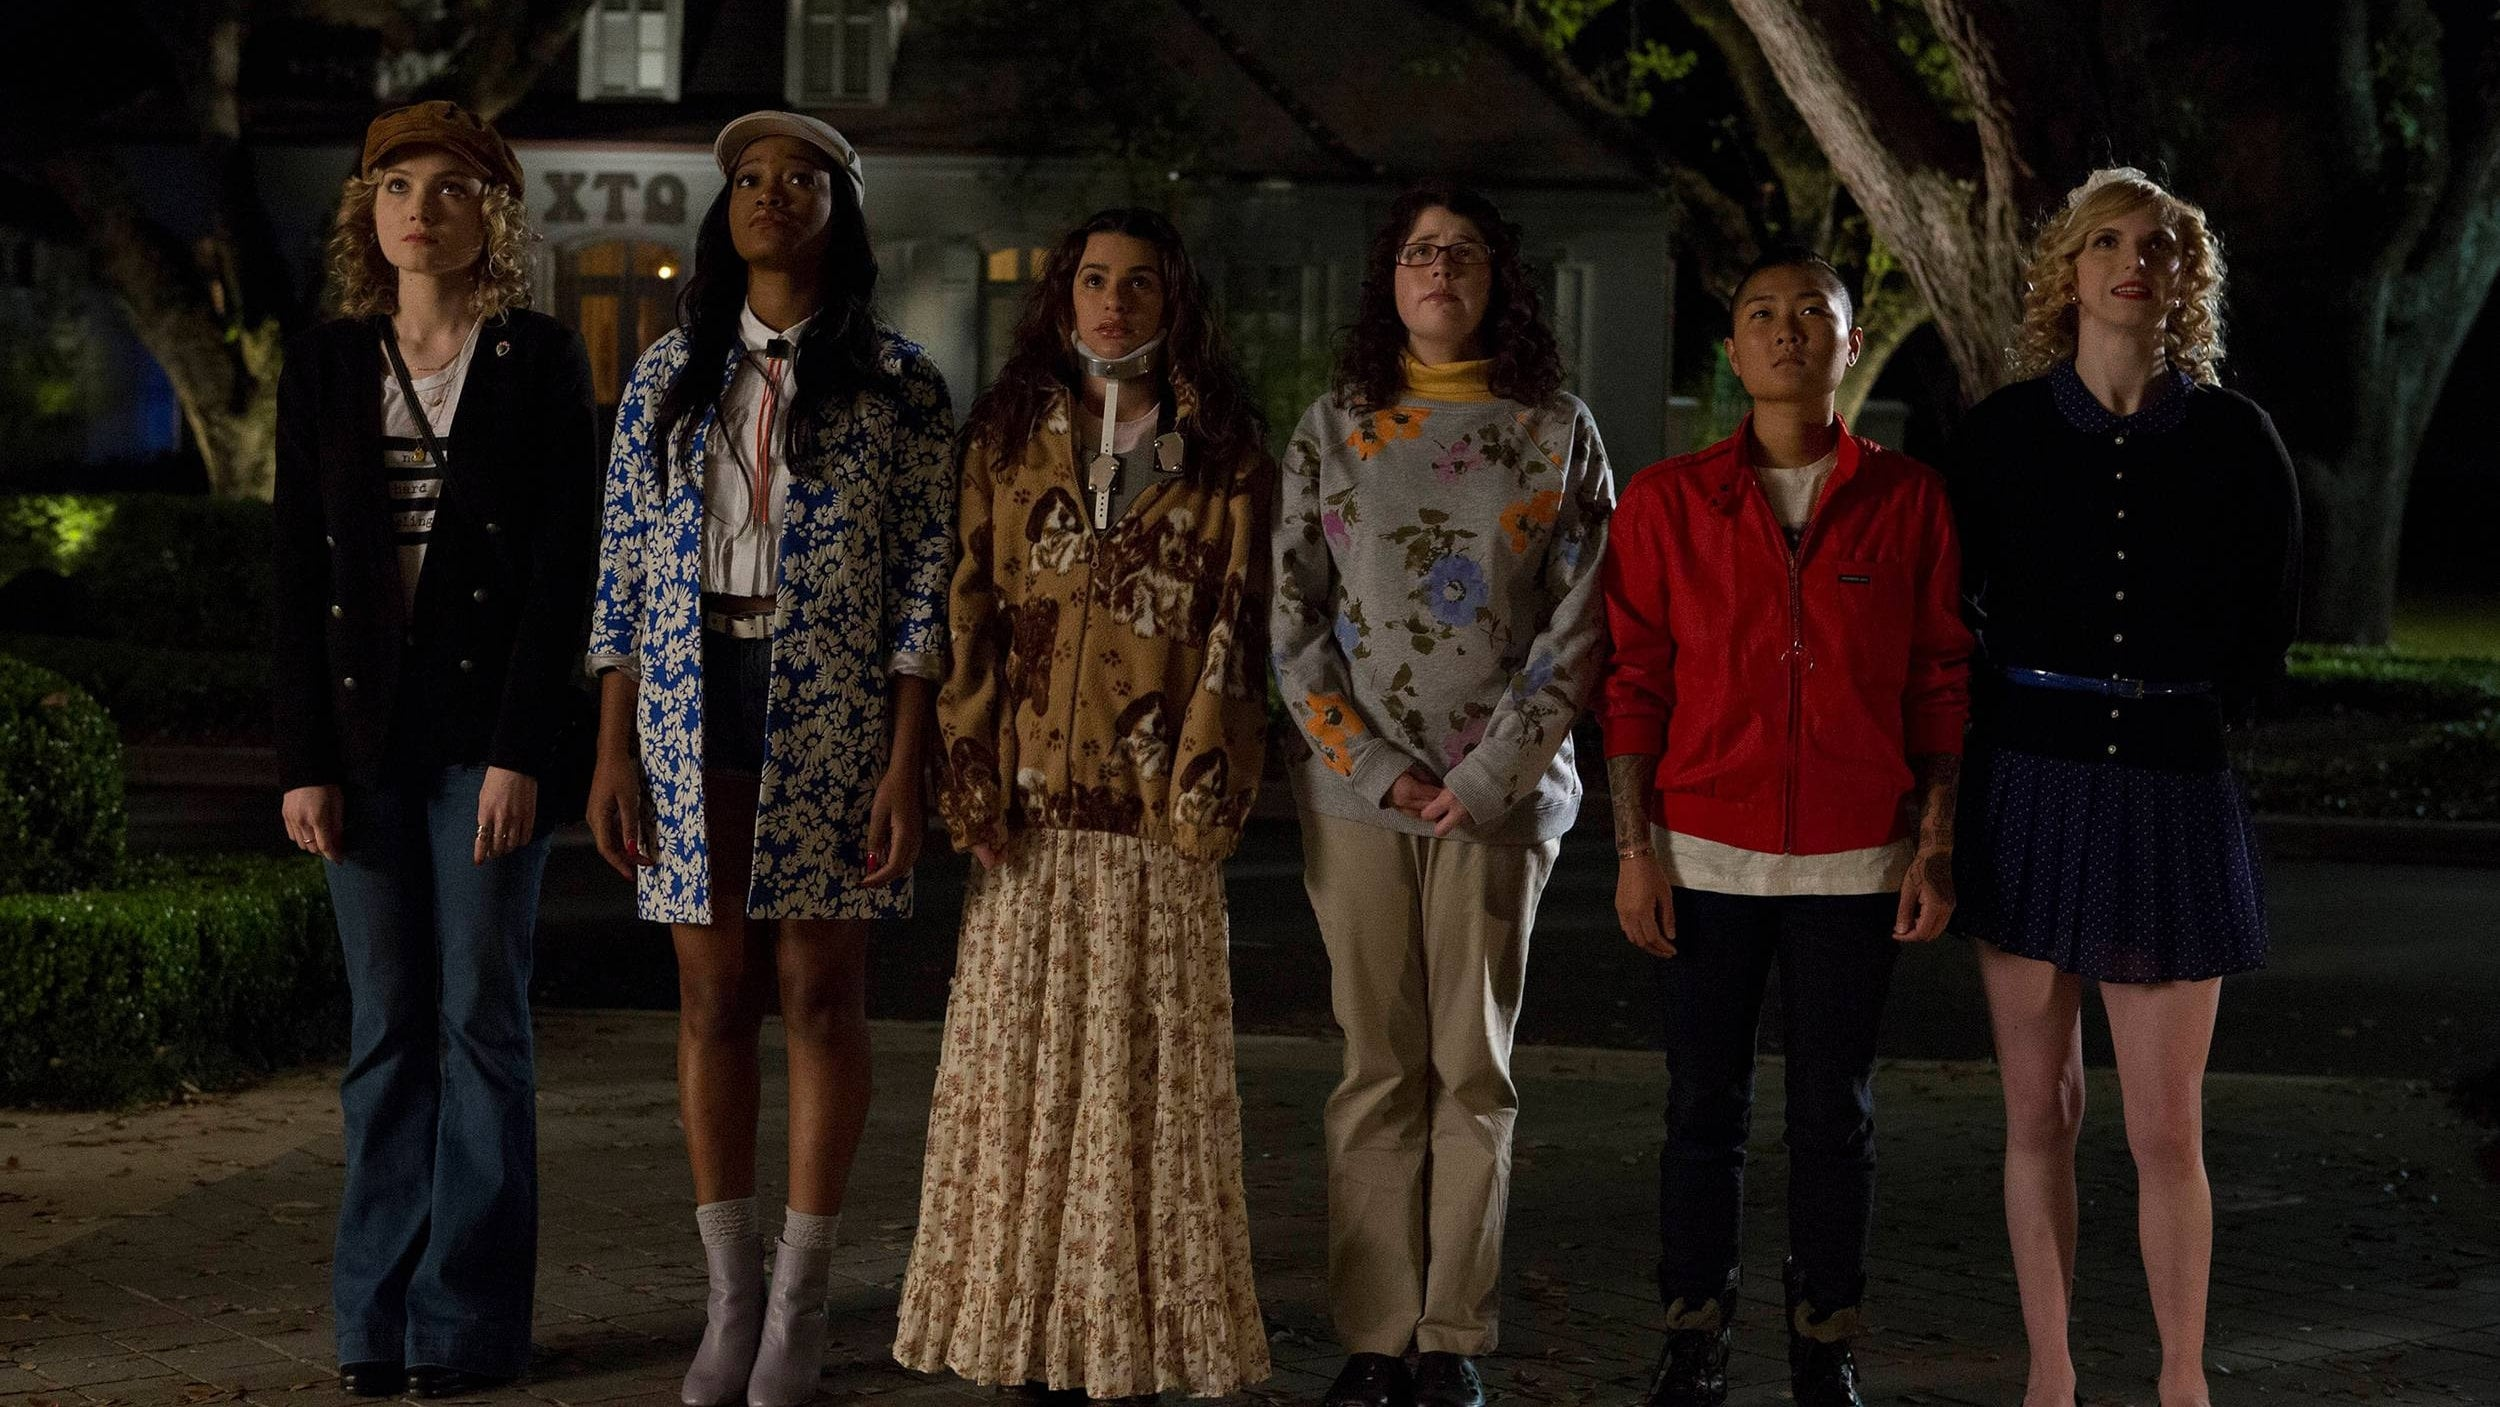 scream queens season 1 episode 1 s01e01 openload watch free